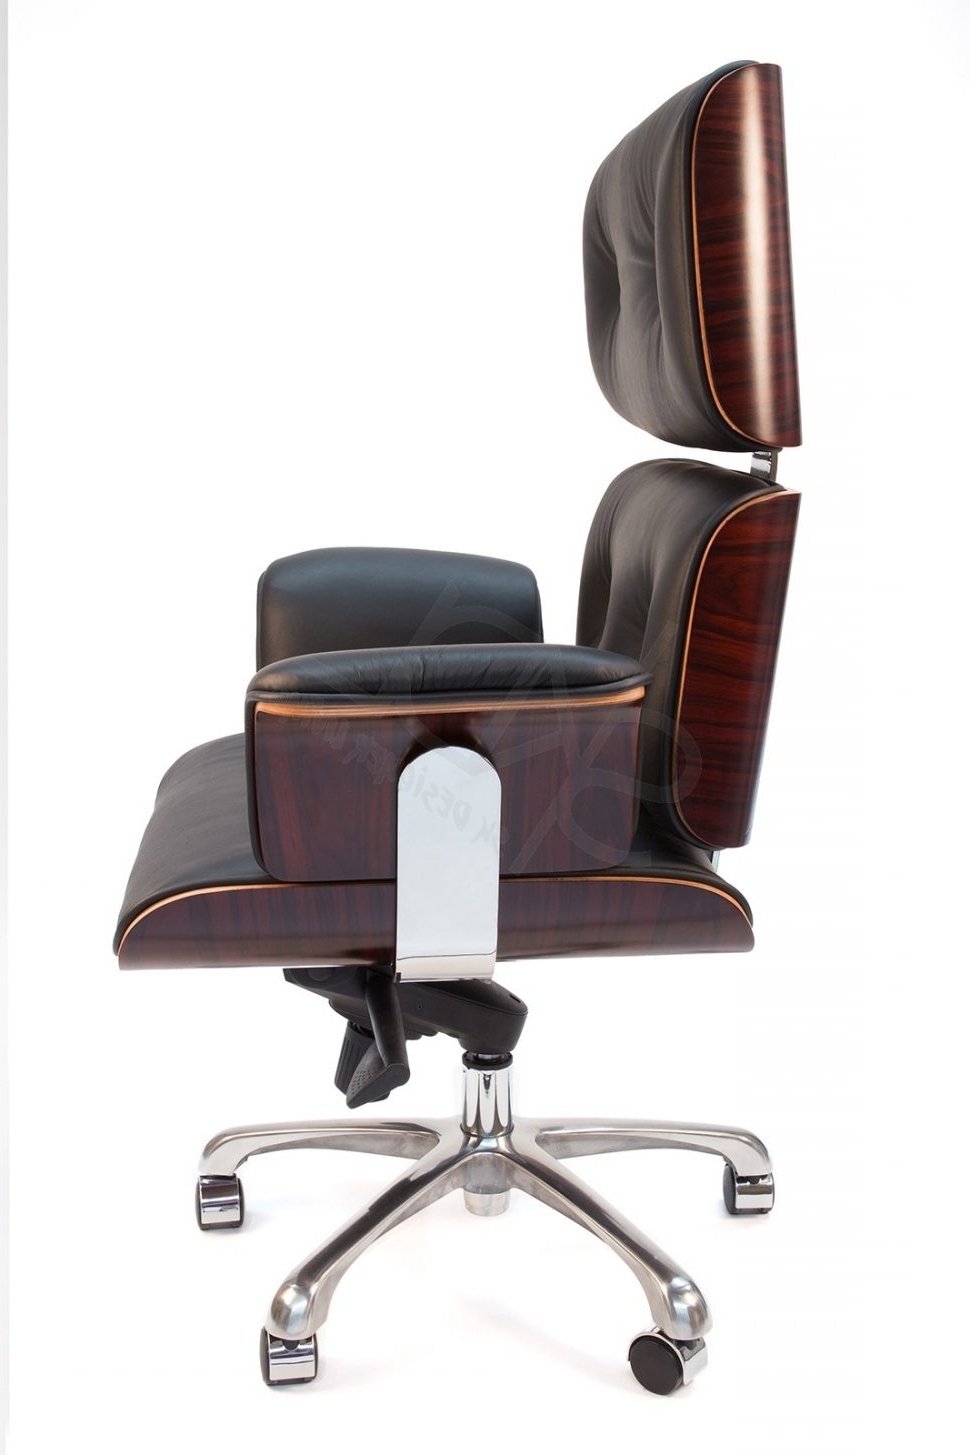 Executive Office Chairs Without Arms Intended For 2019 Office Chairs : Used Office Desk Executive Office Desk Chair Mesh (Gallery 5 of 20)